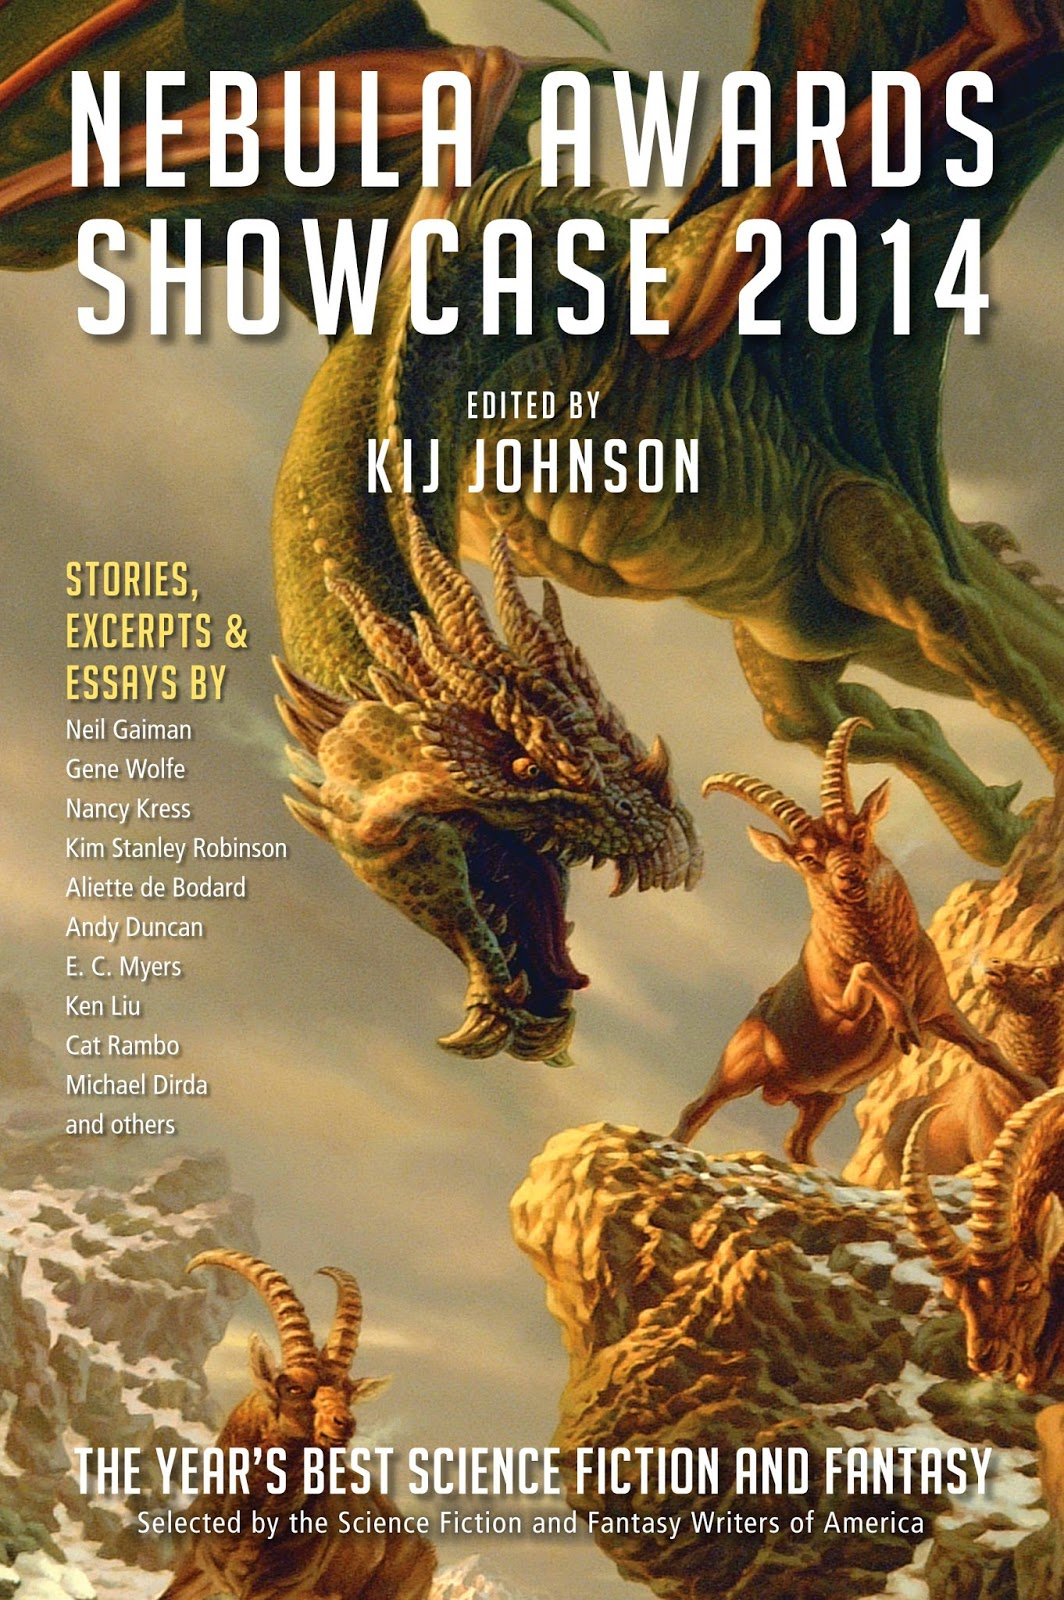 The Nebula Awards Showcase 2014 edited by Kij Johnson